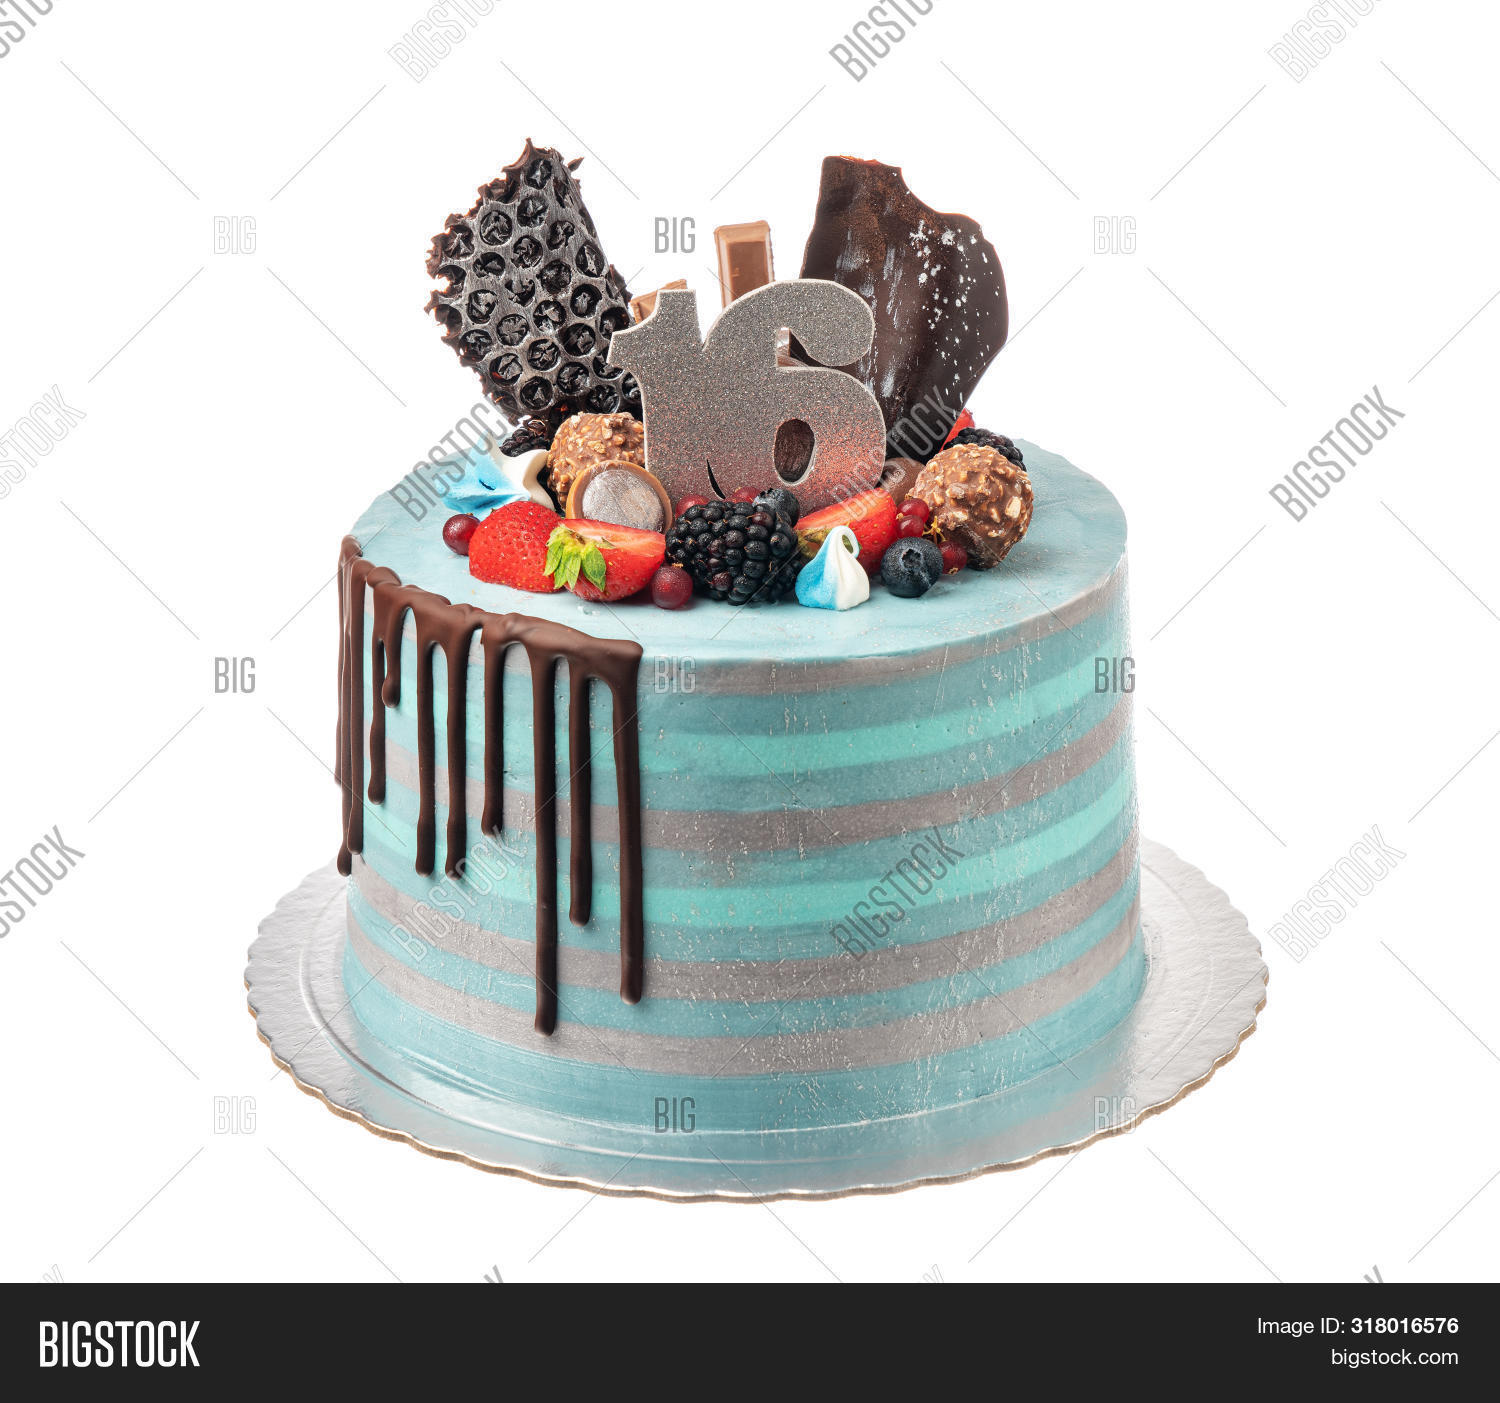 Enjoyable Birthday Cake Boy Image Photo Free Trial Bigstock Funny Birthday Cards Online Elaedamsfinfo